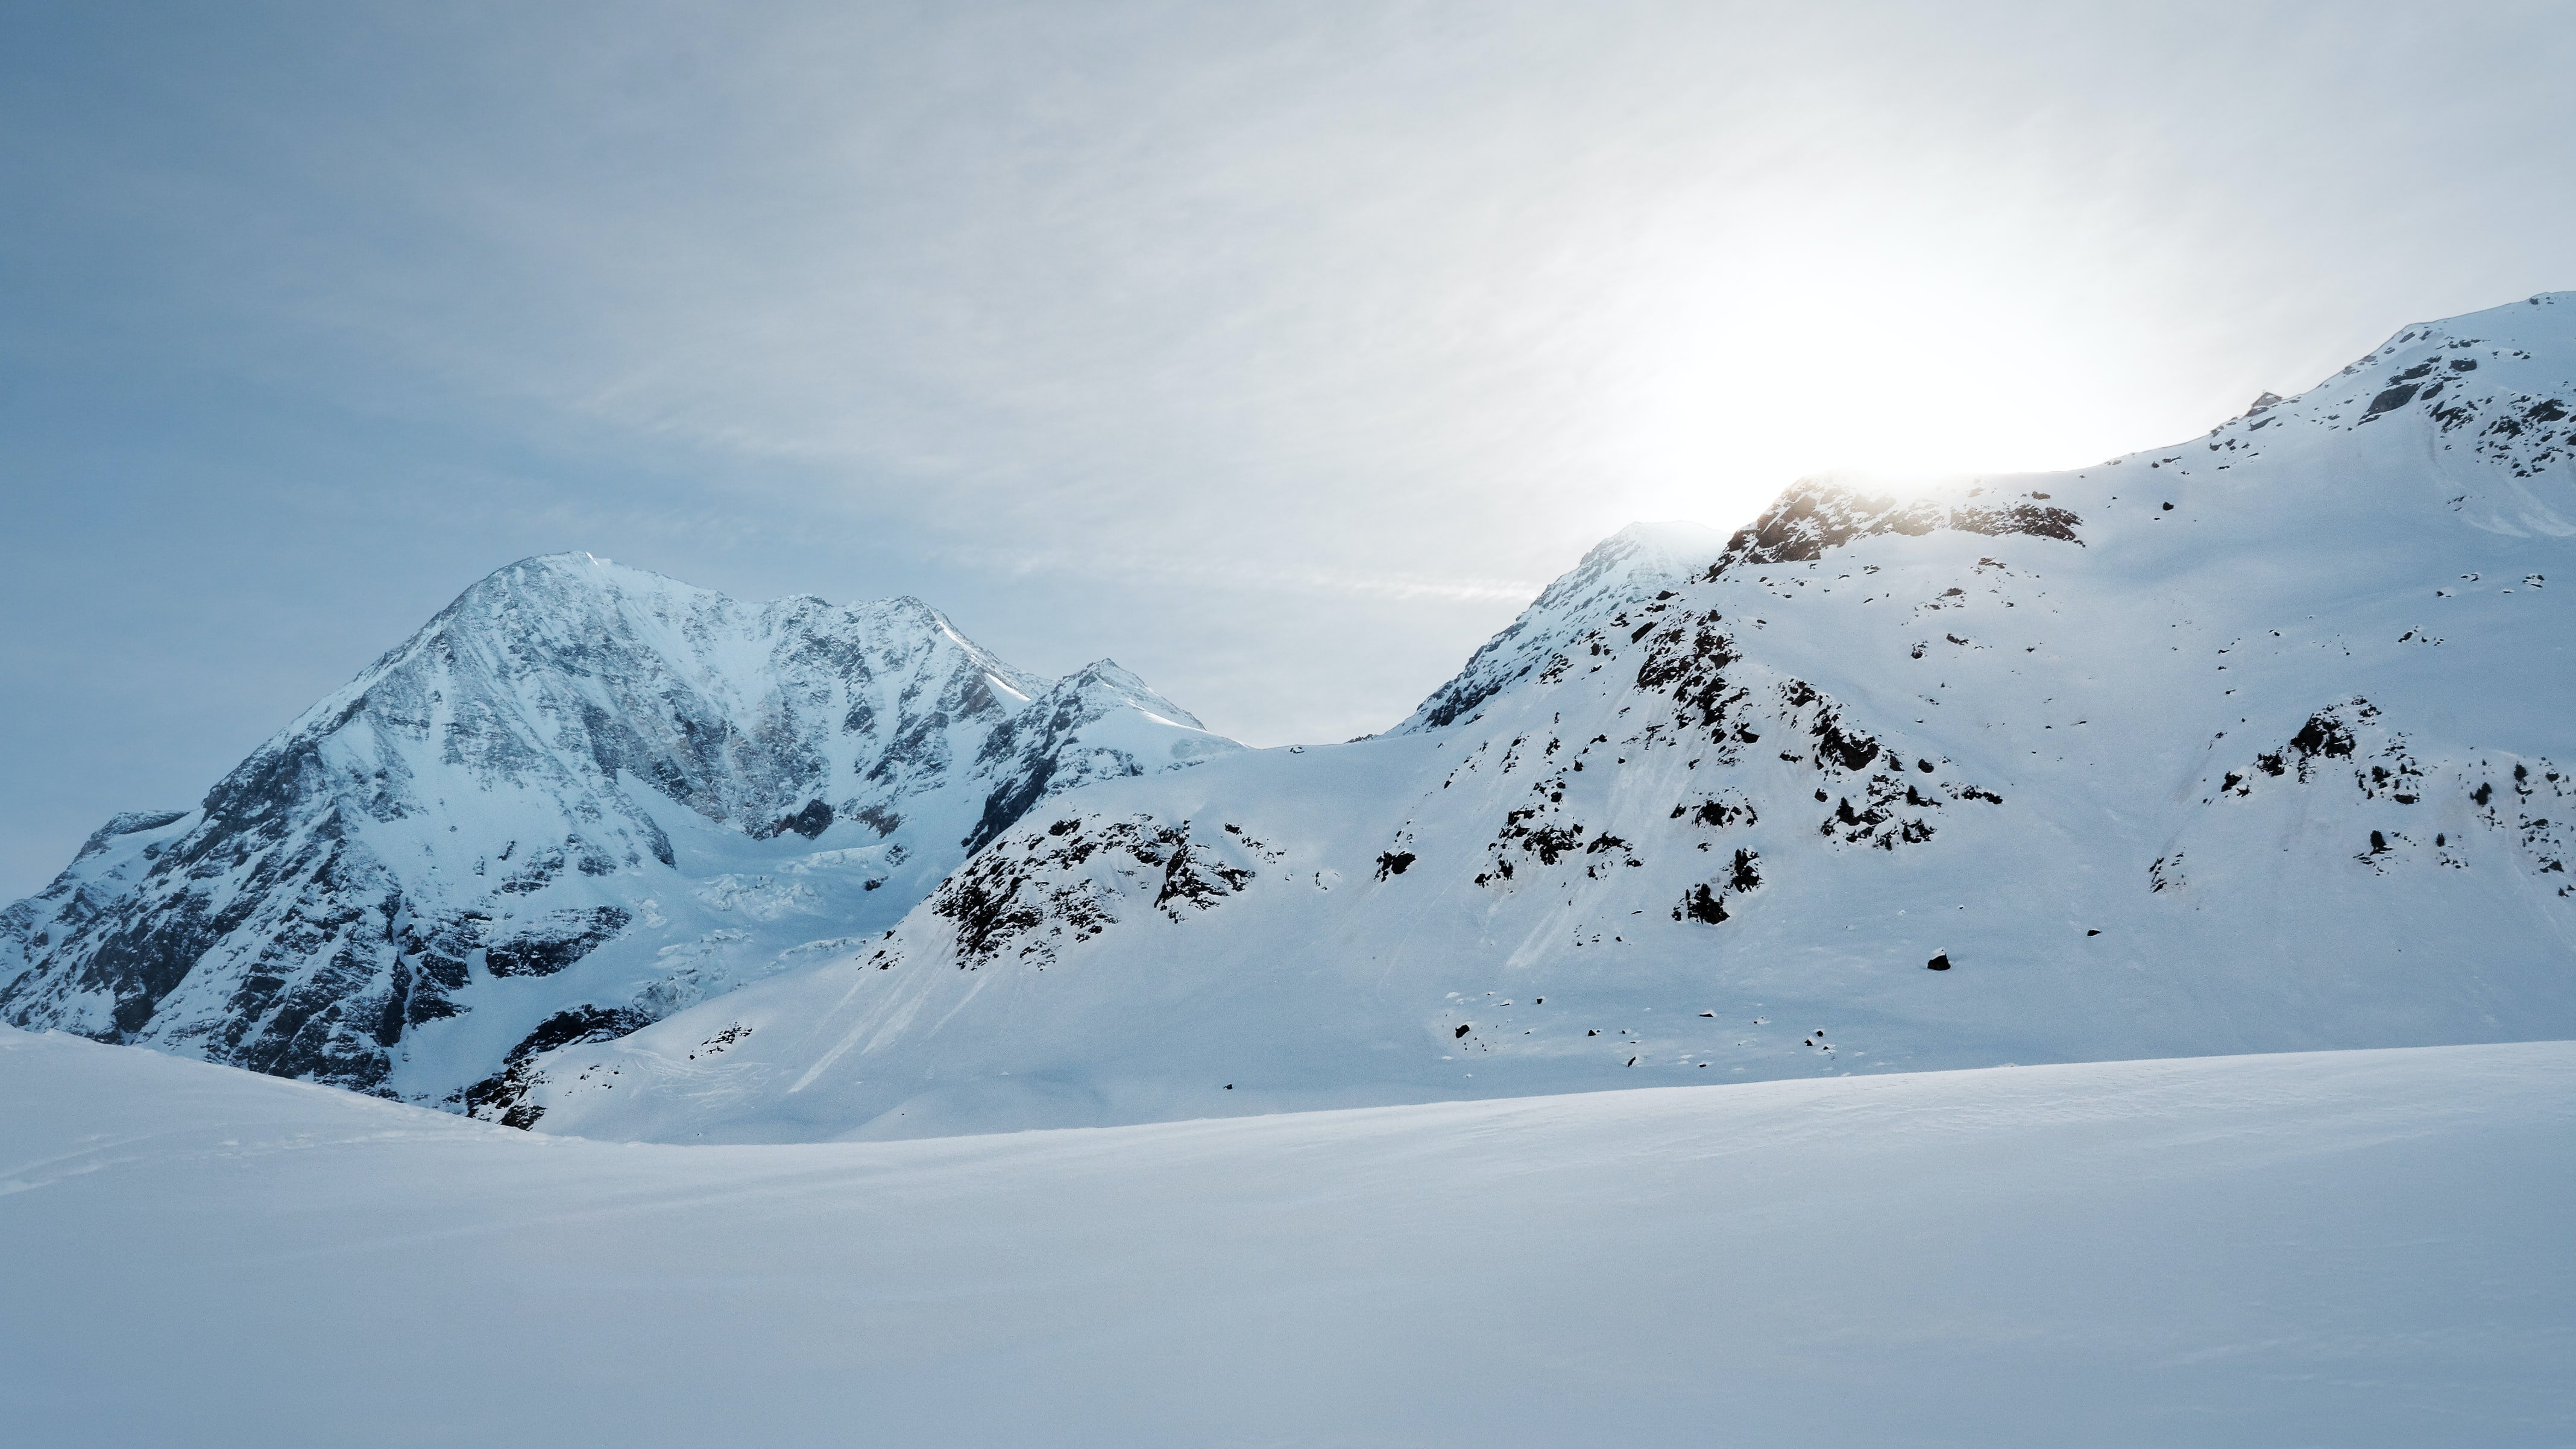 A wintry landscape with rugged peaks under a deep snow cover in Solda